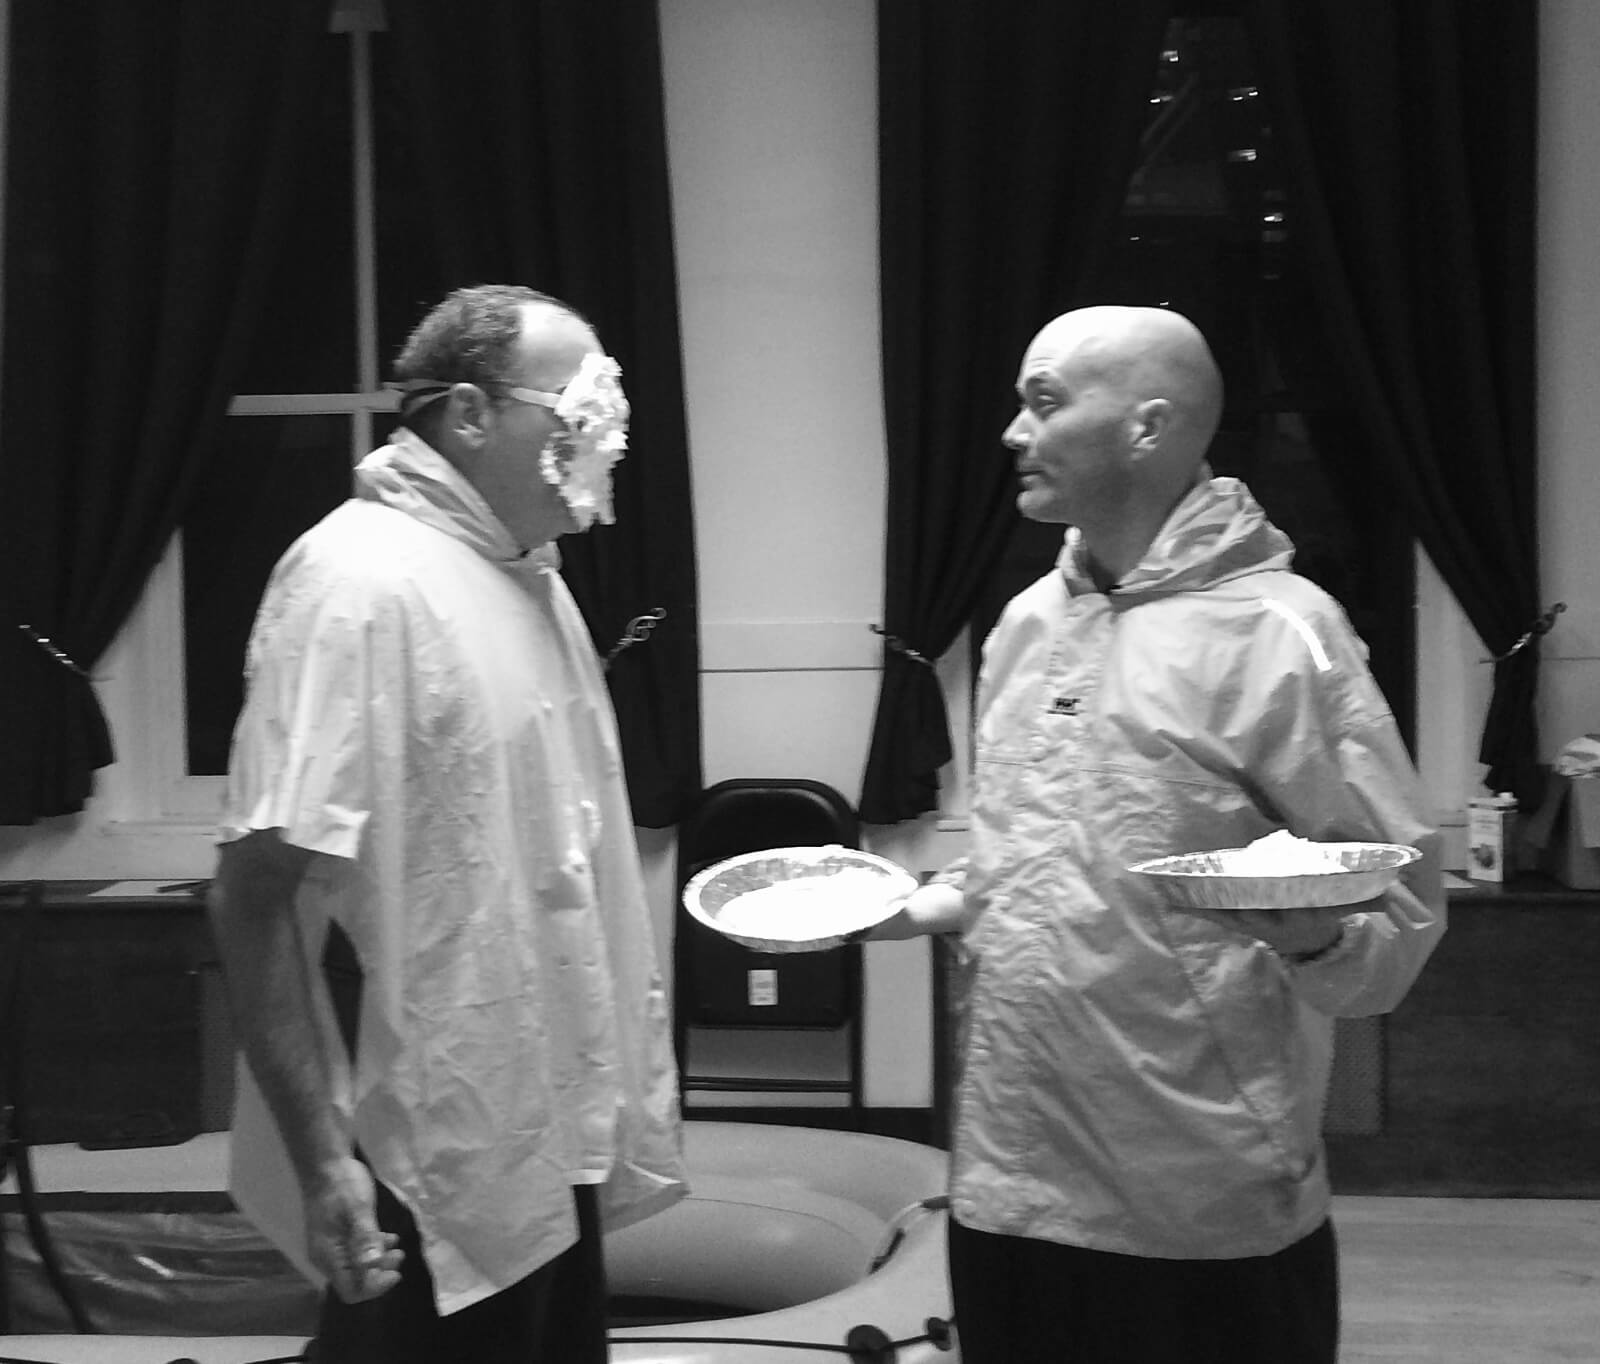 Mandy Patinkin and Taylor Mac rehearsing a scene with pies. Mandy has face covered in whipped cream while Taylor holds the empty pie plate.